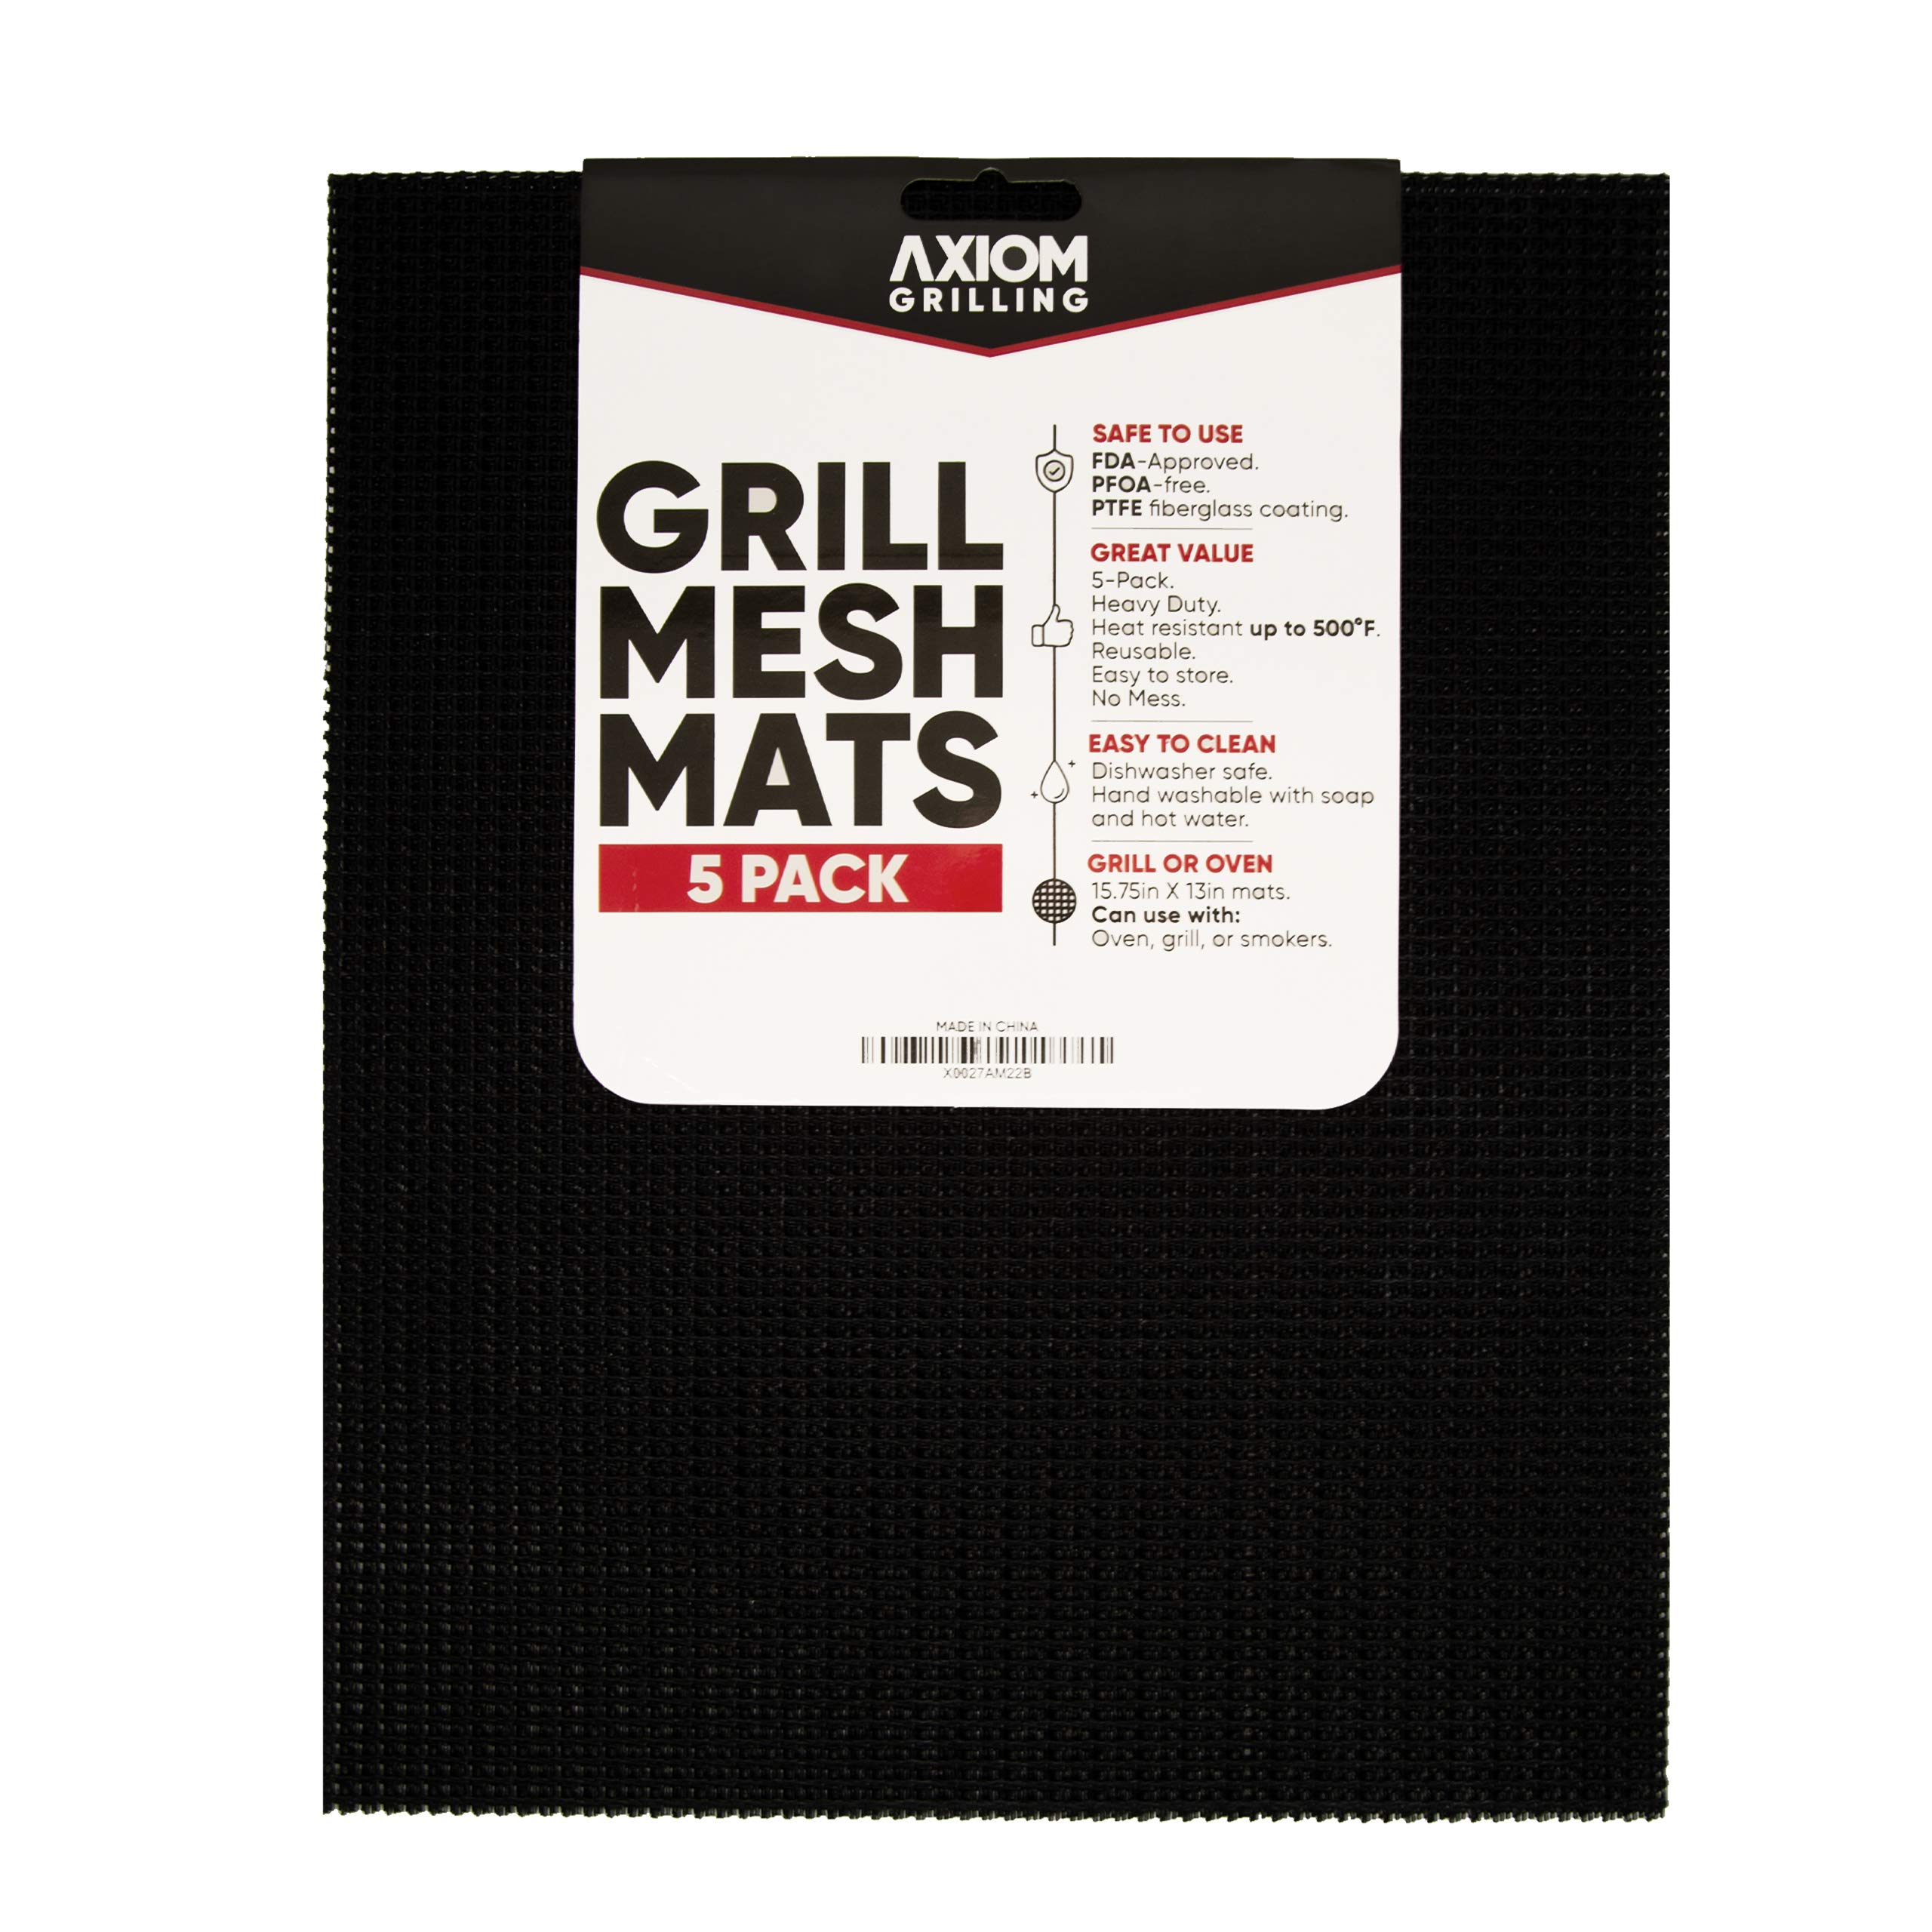 Axiom Grilling Mats for Gas Grill and BBQ | 5 Pack of Premium Nonstick BBQ Mesh Grill Mat Sheets | 15.75 X 13 Inches | Ideal for The Oven, Grill, Barbeque, and Smoker by Axiom Grilling